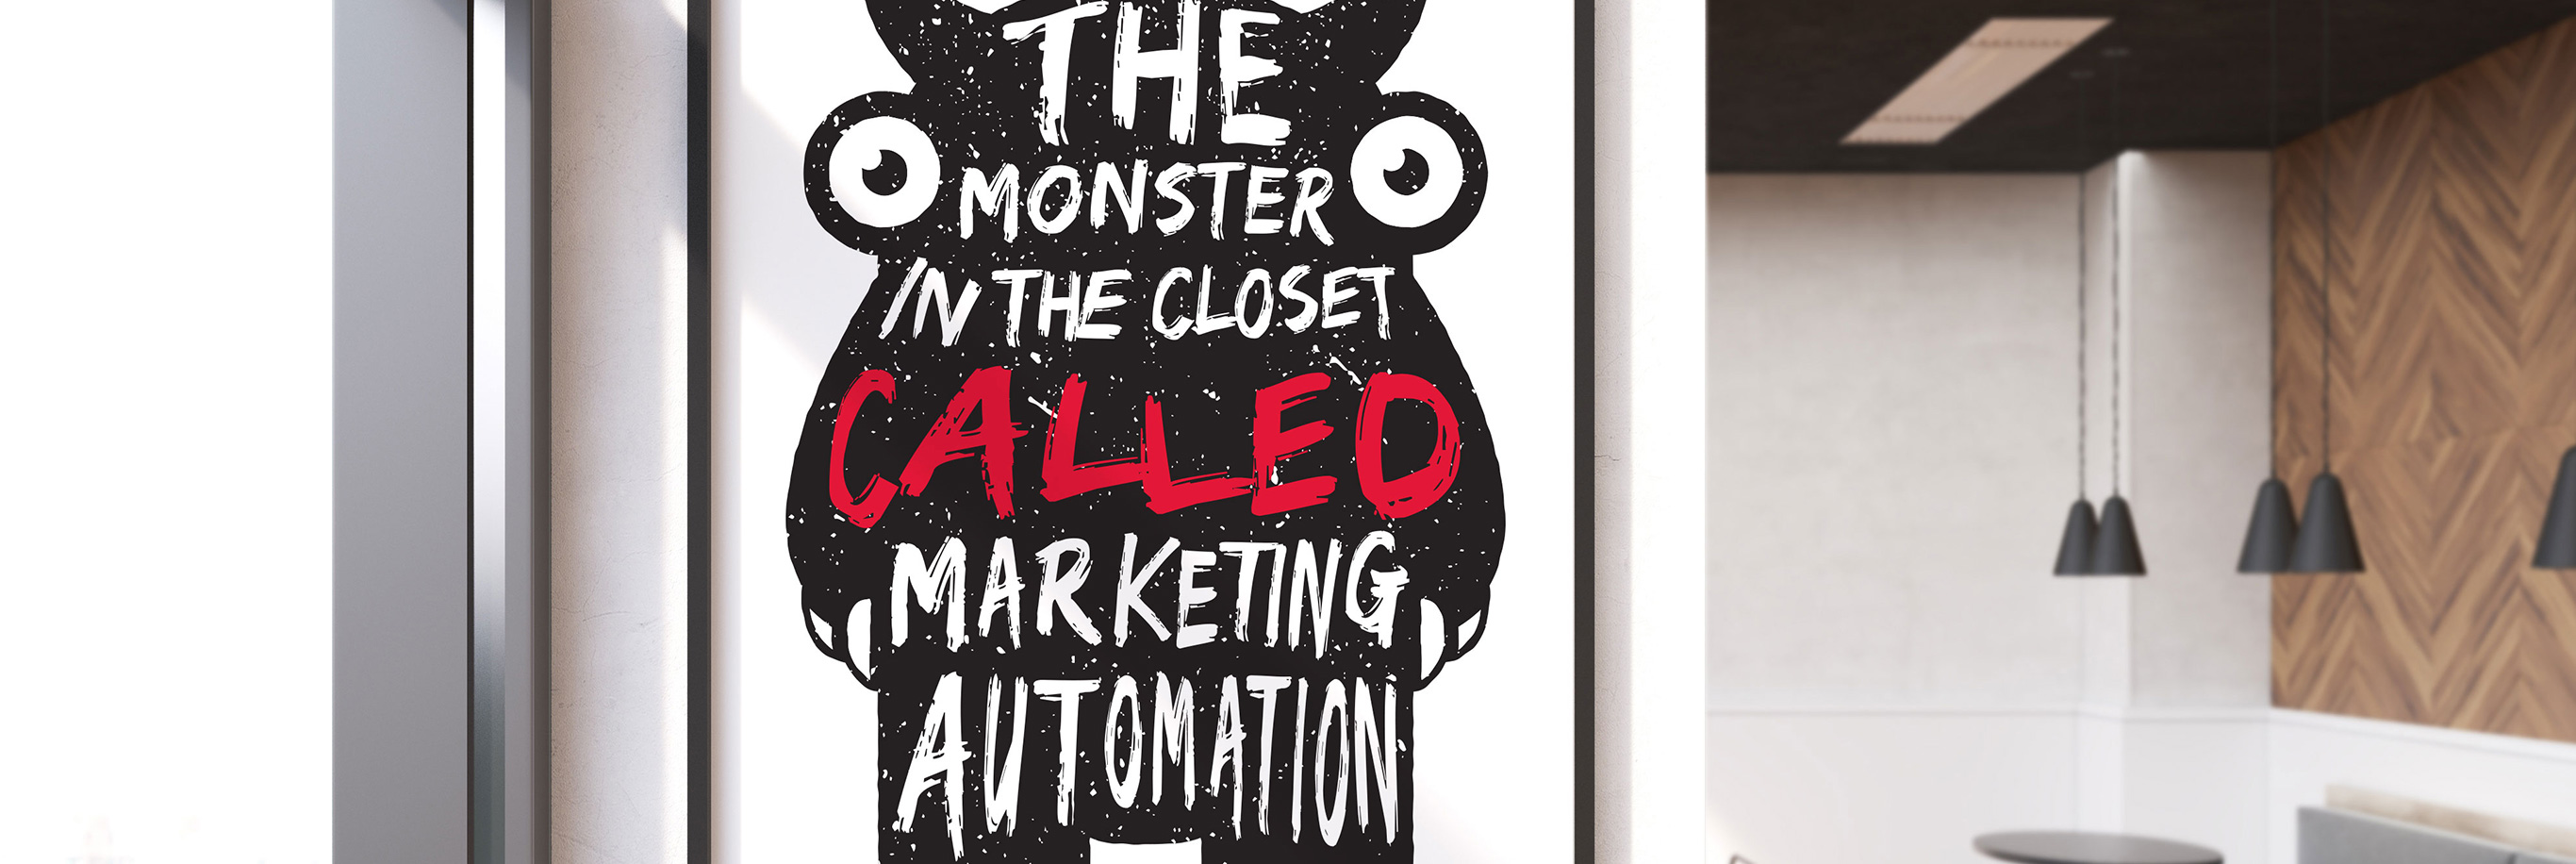 The monster in the closet called marketing automation